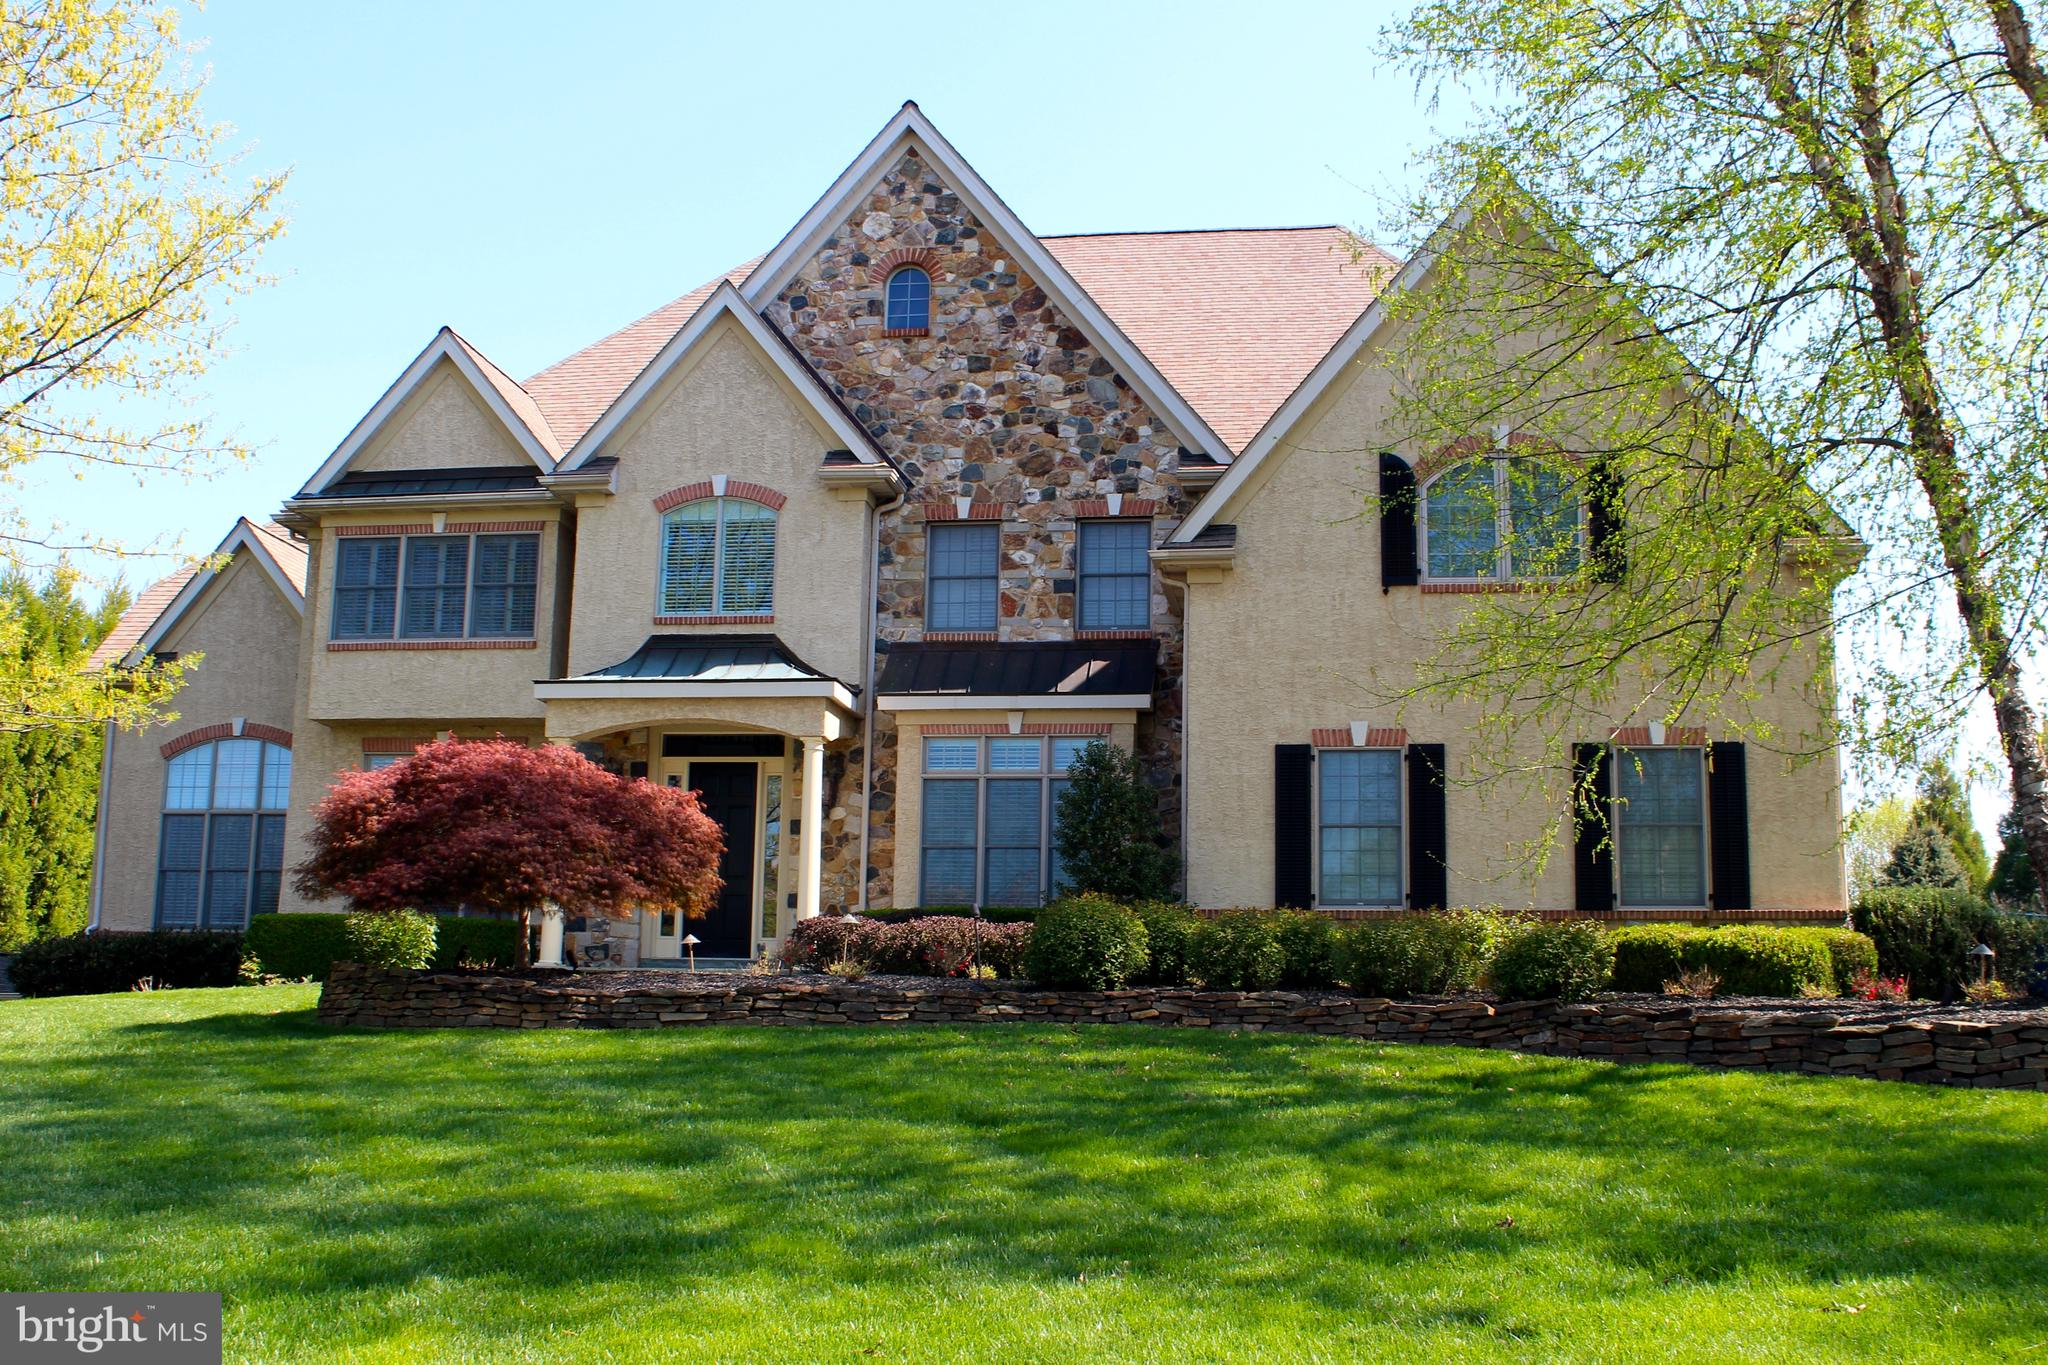 400 WOODALE DRIVE, KENNETT SQUARE, PA 19348